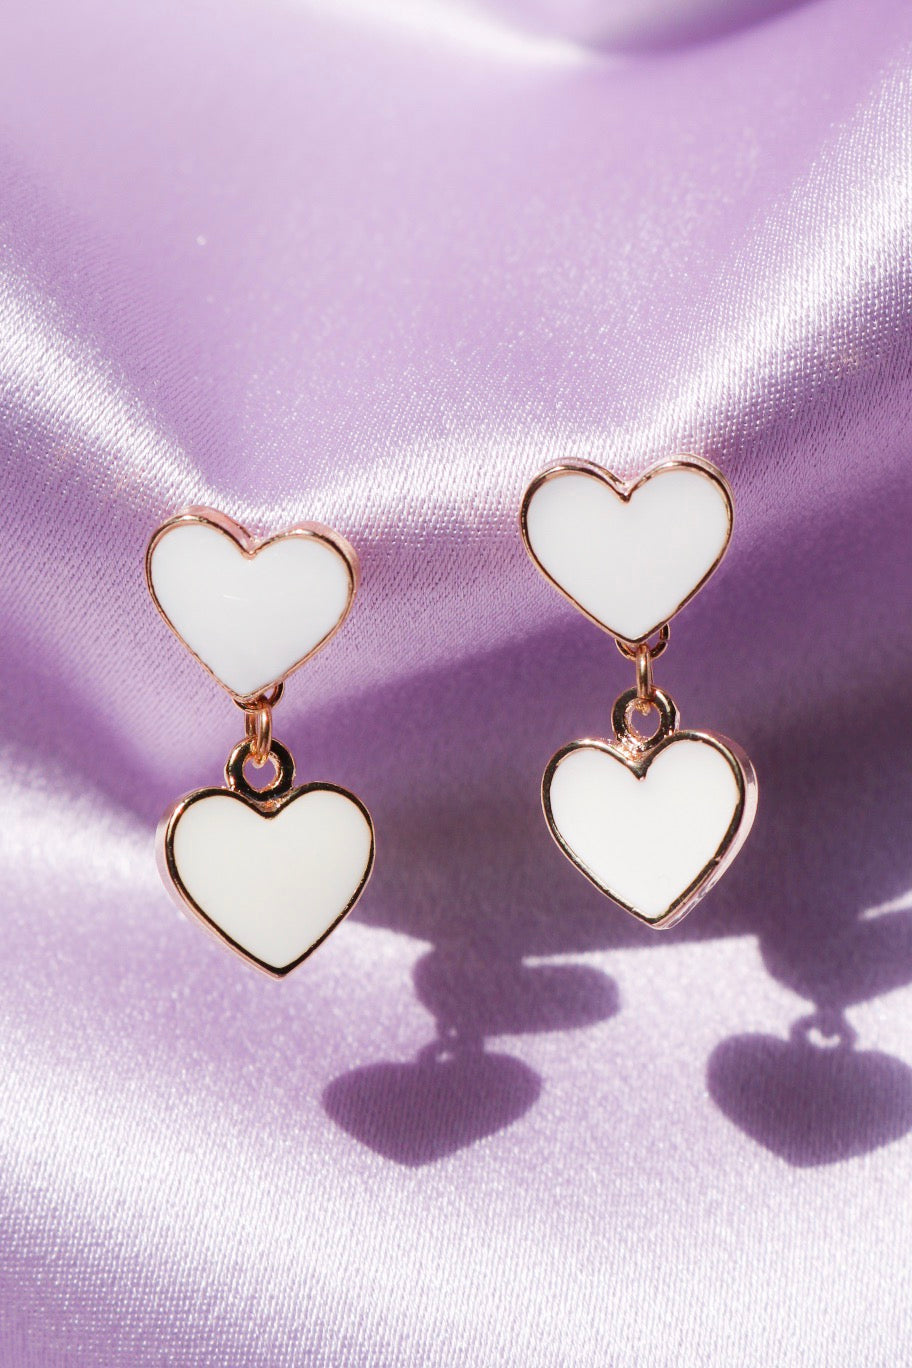 Sweetheart Earrings - White